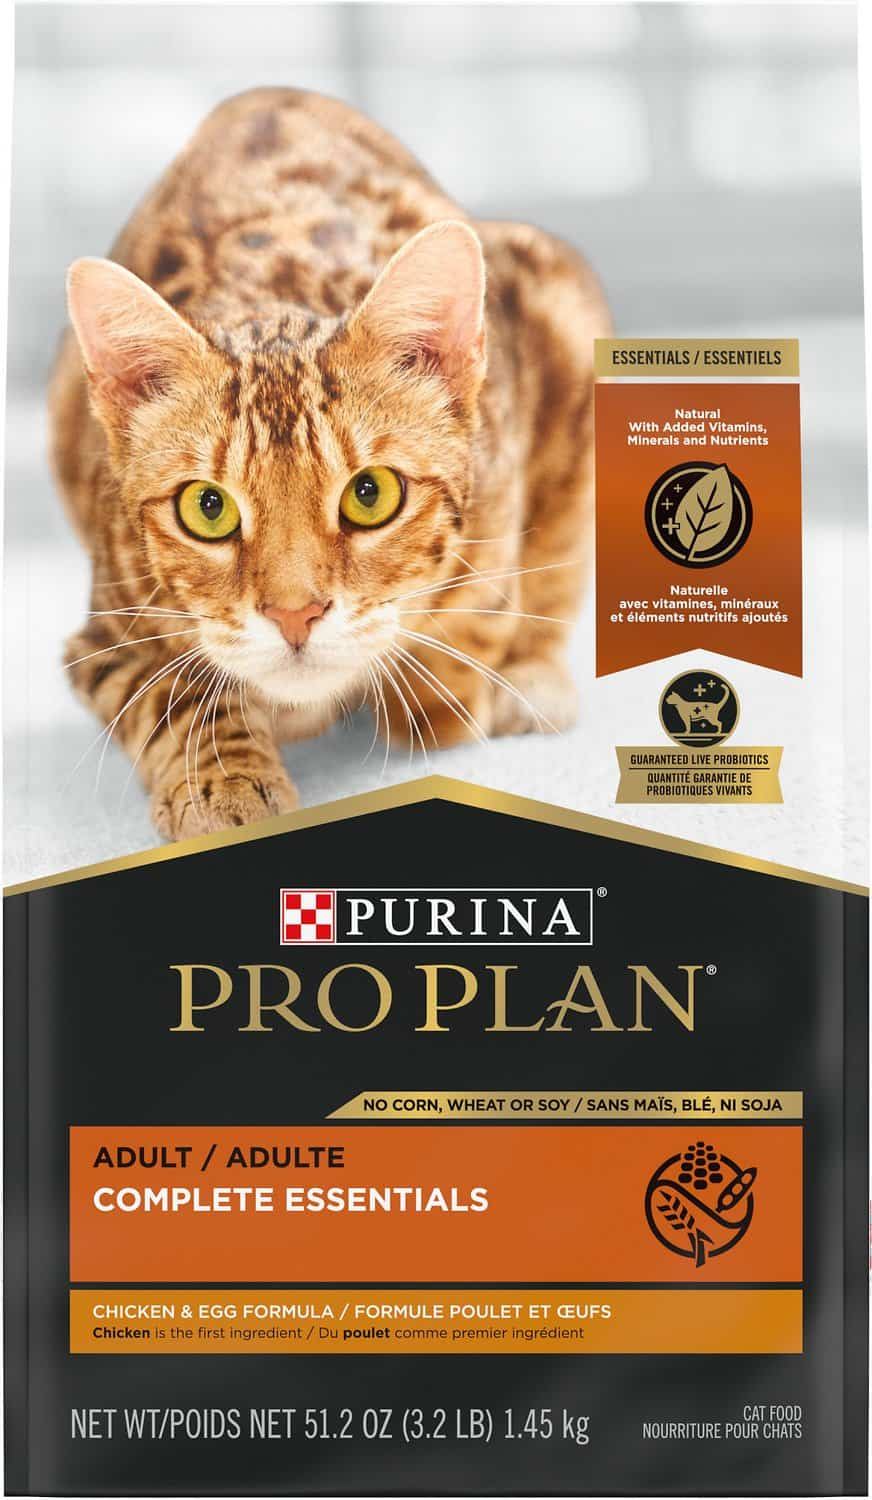 PURINA PRO PLAN Adult Chicken & Egg Formula Grain-Free Dry Cat Food   Chewy